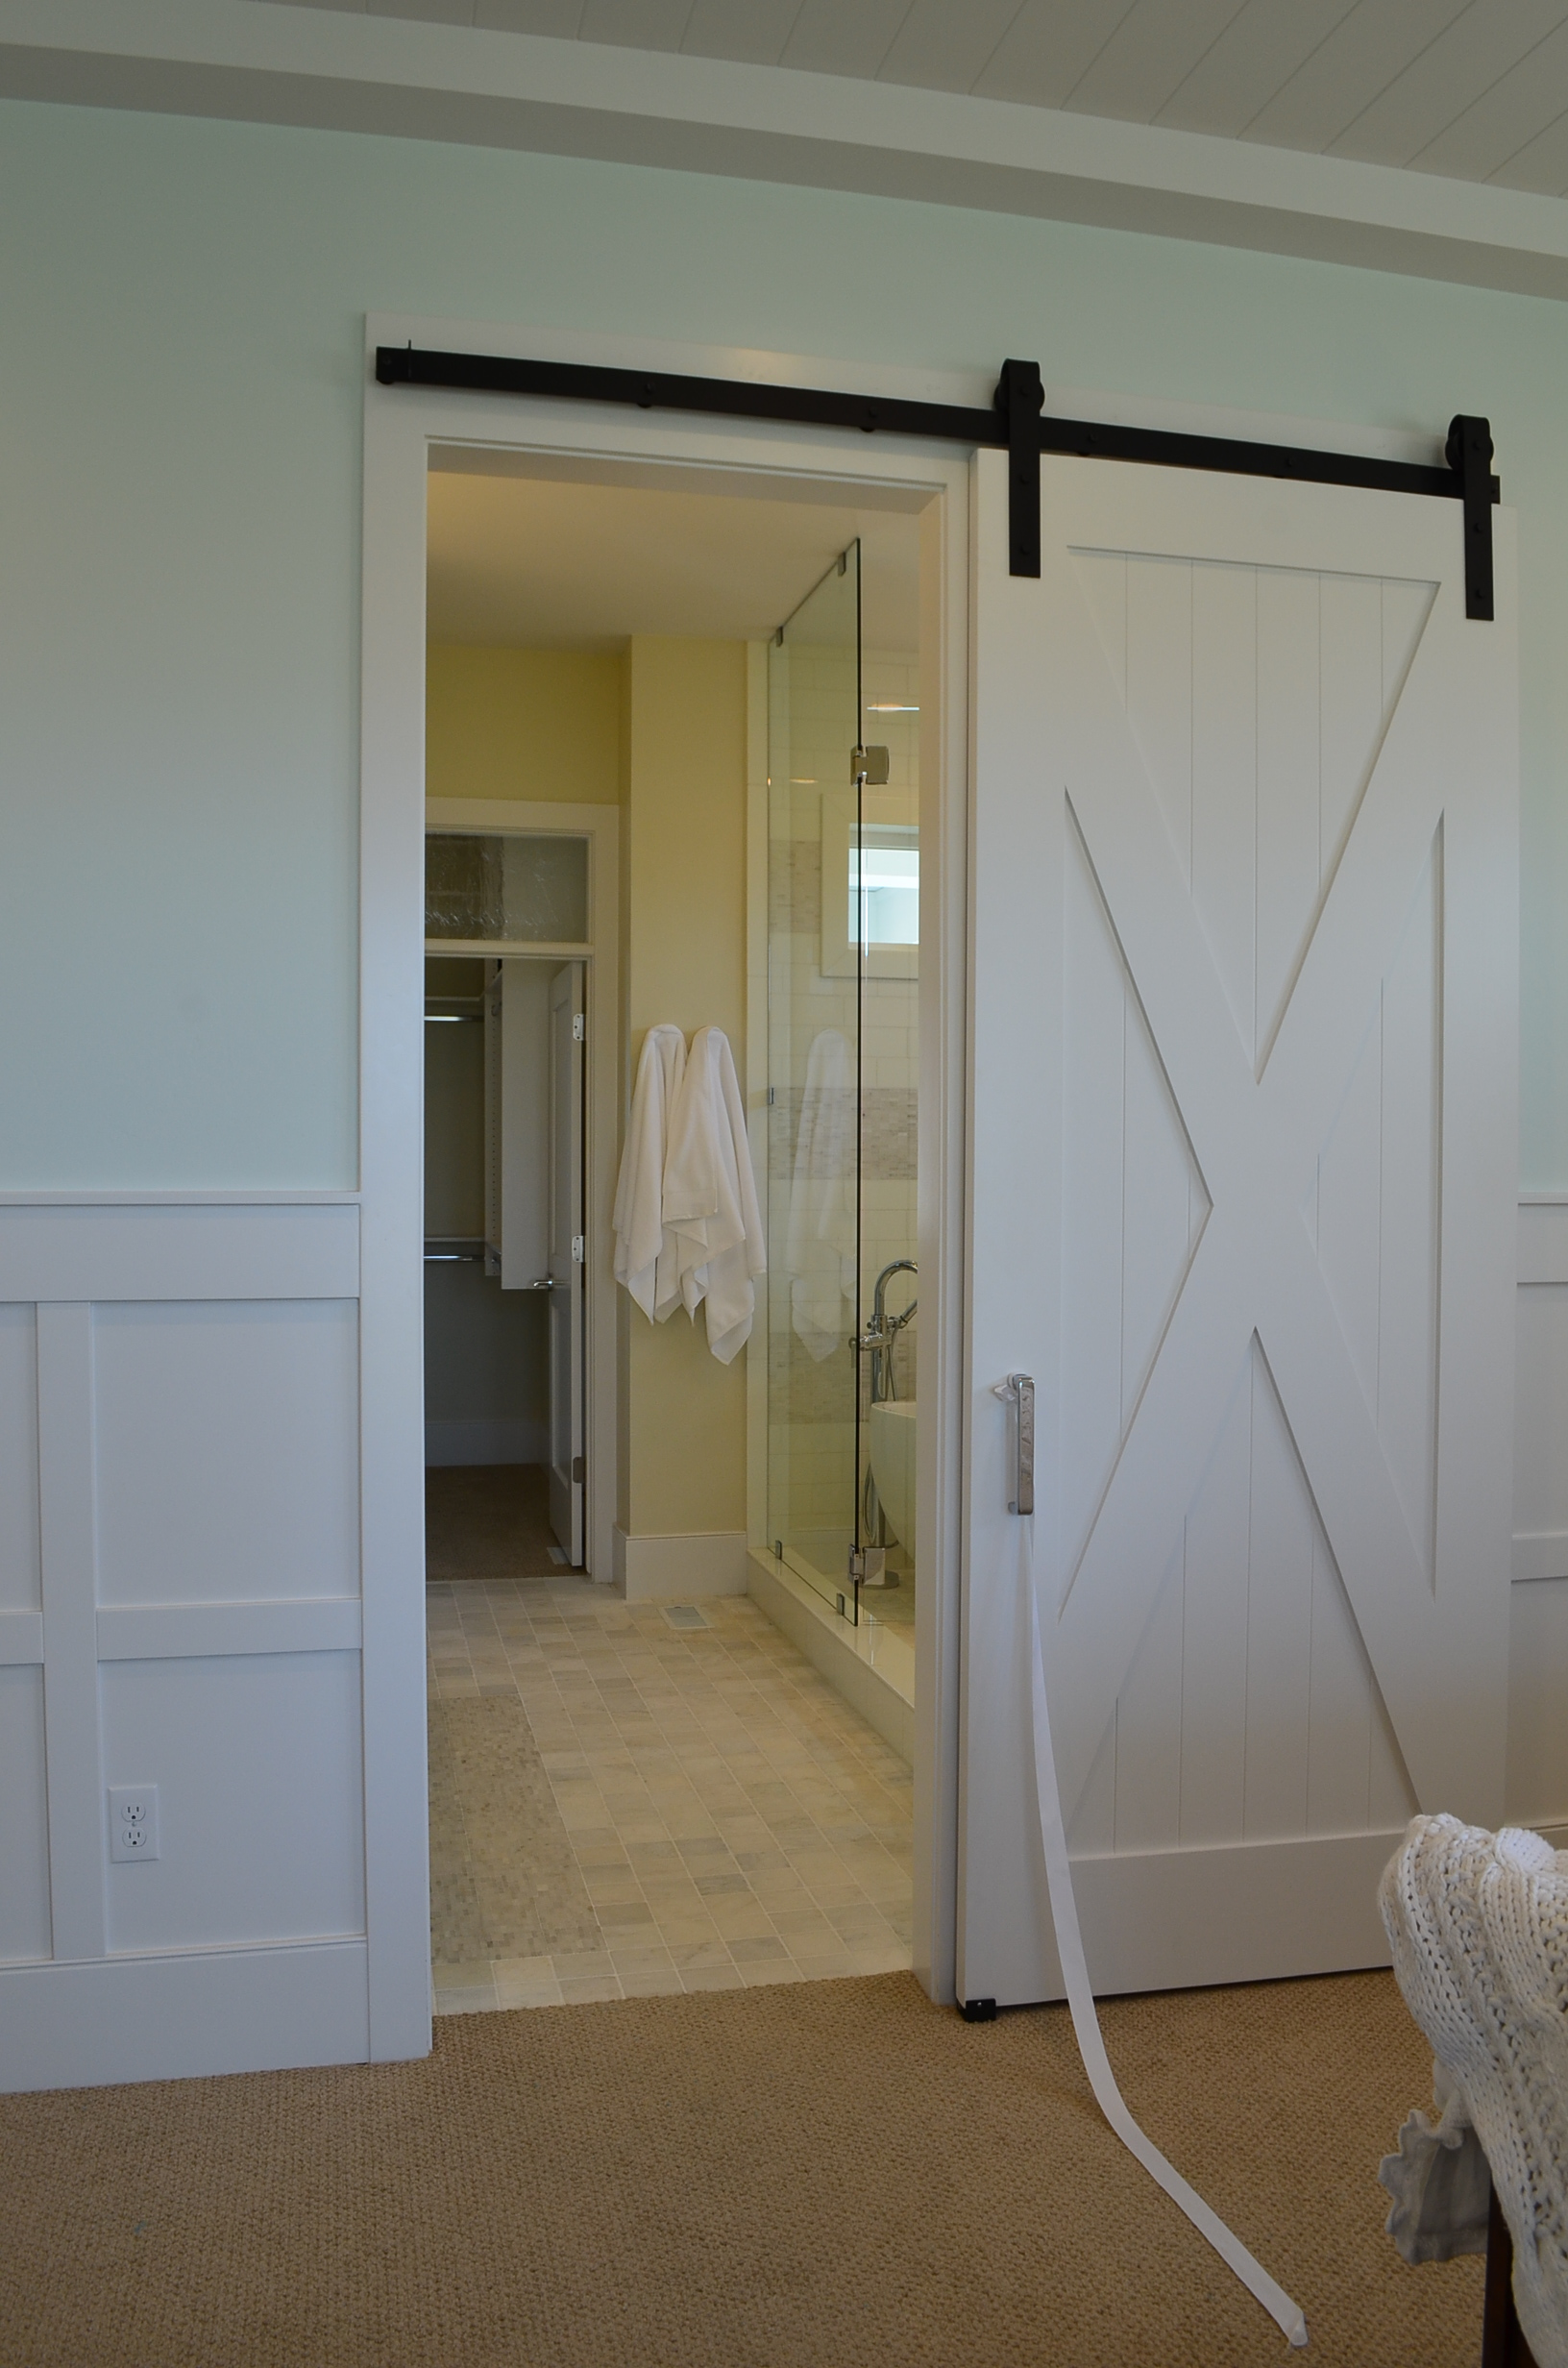 10 barn door designs for any style home page 5 of 11 - Barn door patterns ...